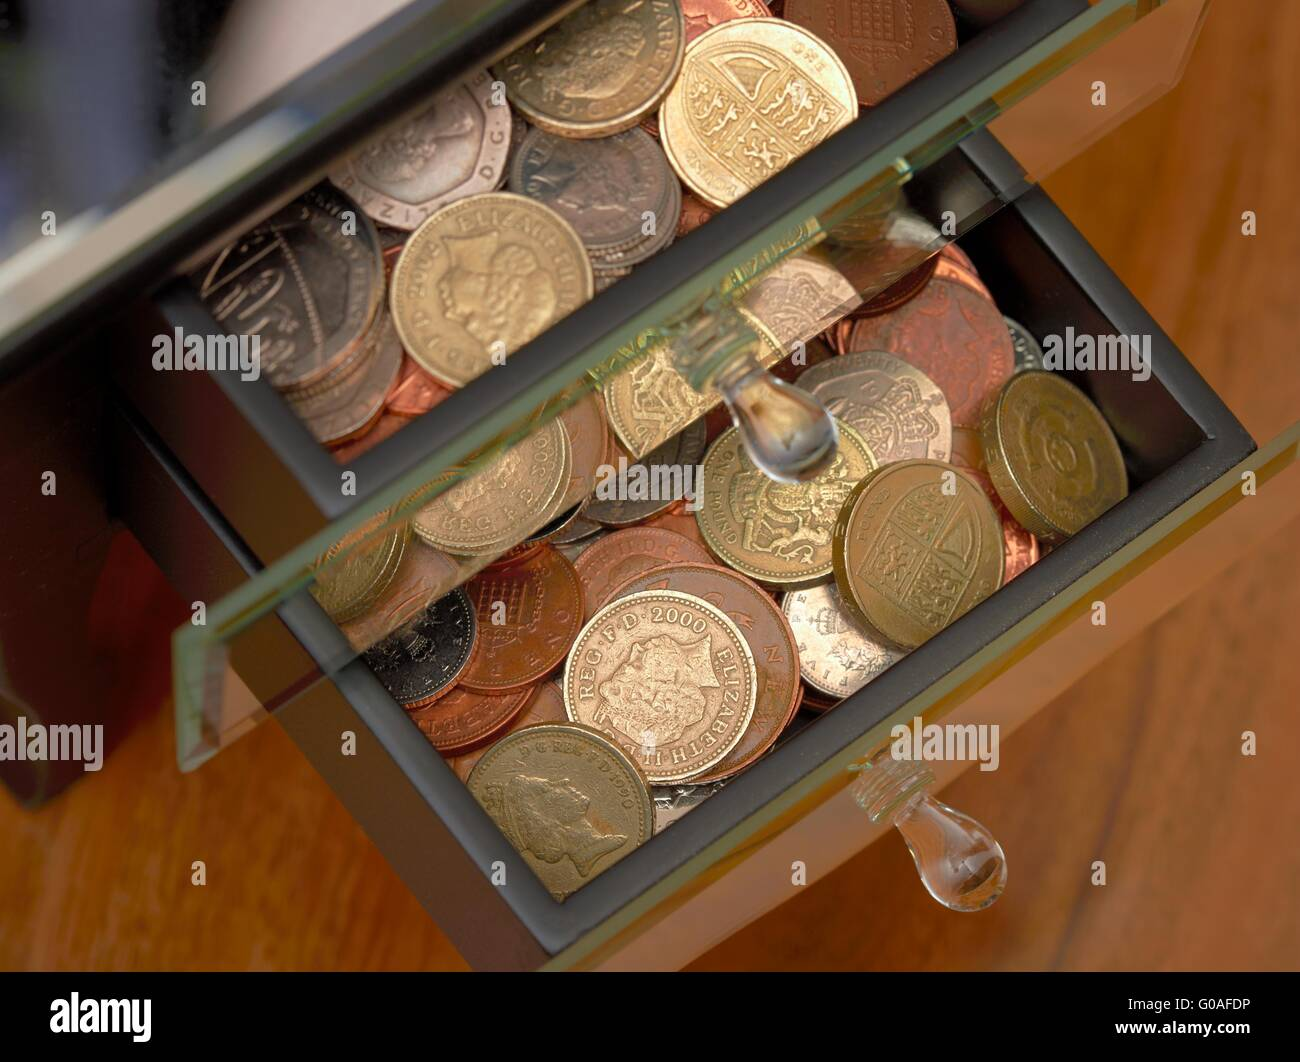 Stash of Coins kept in jewelery draws home savings concept. - Stock Image